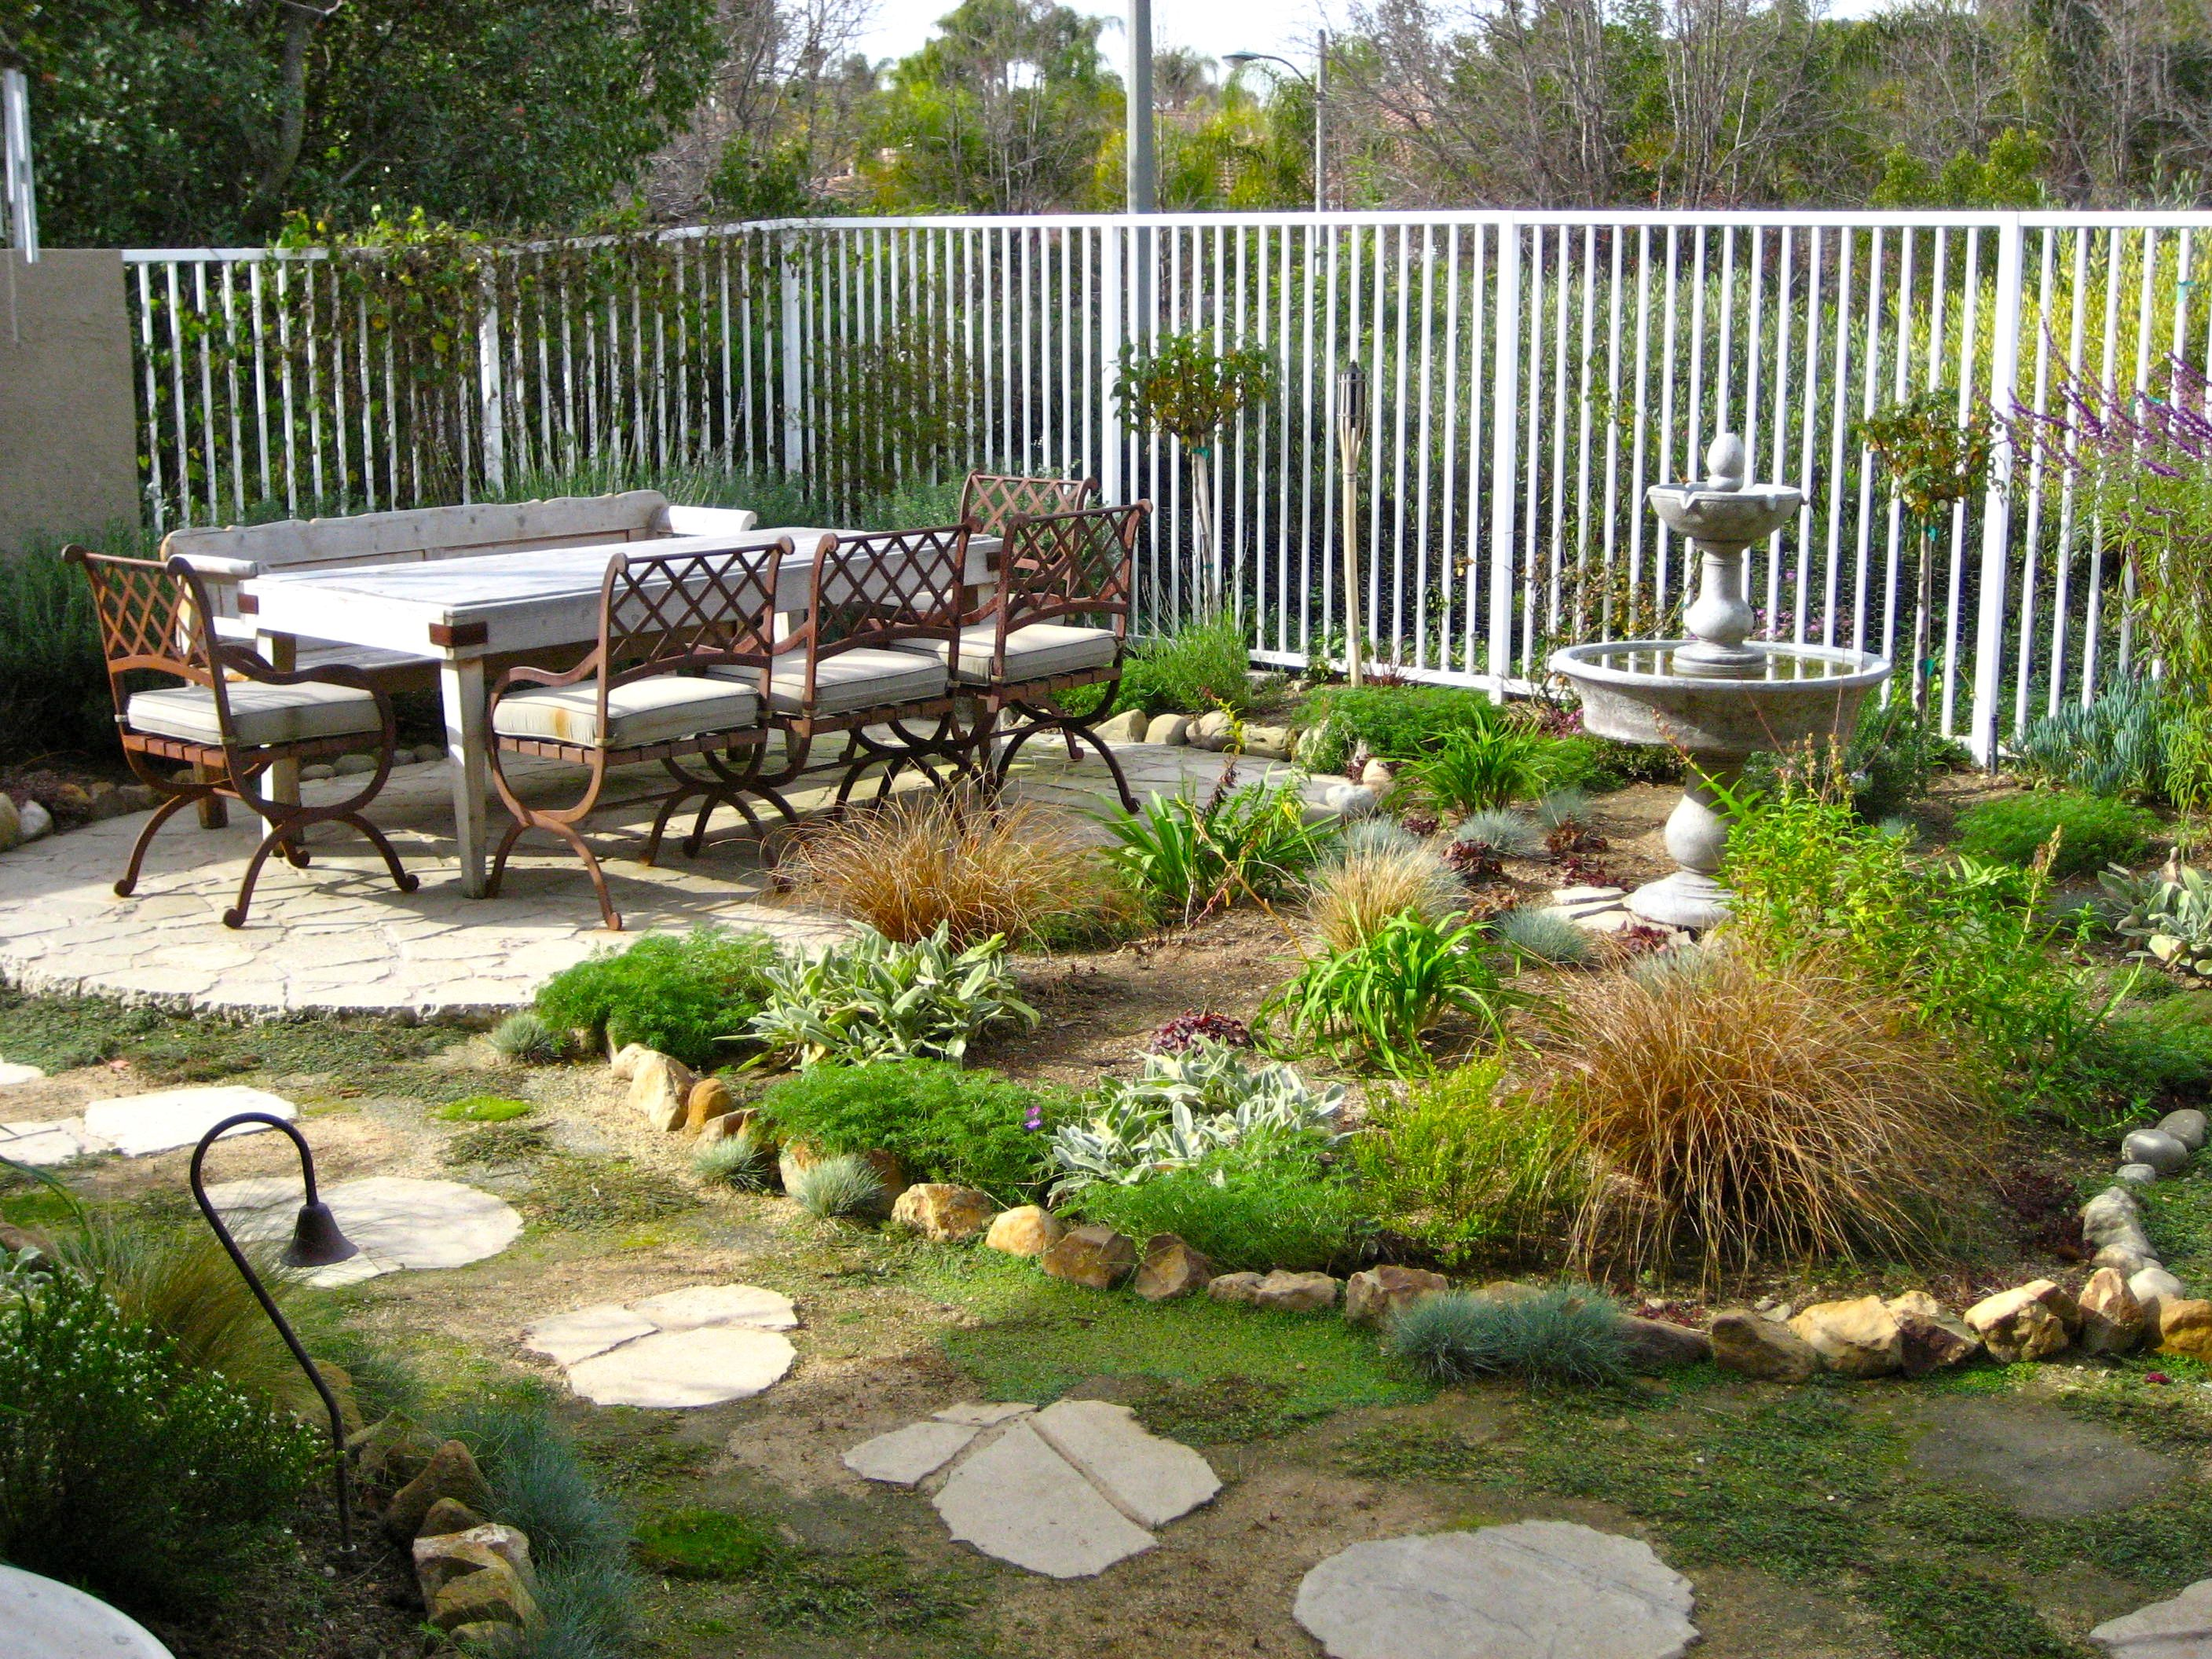 backyard landscaping design ideas on a budget backyard furniture ideas - Backyard Design Ideas On A Budget